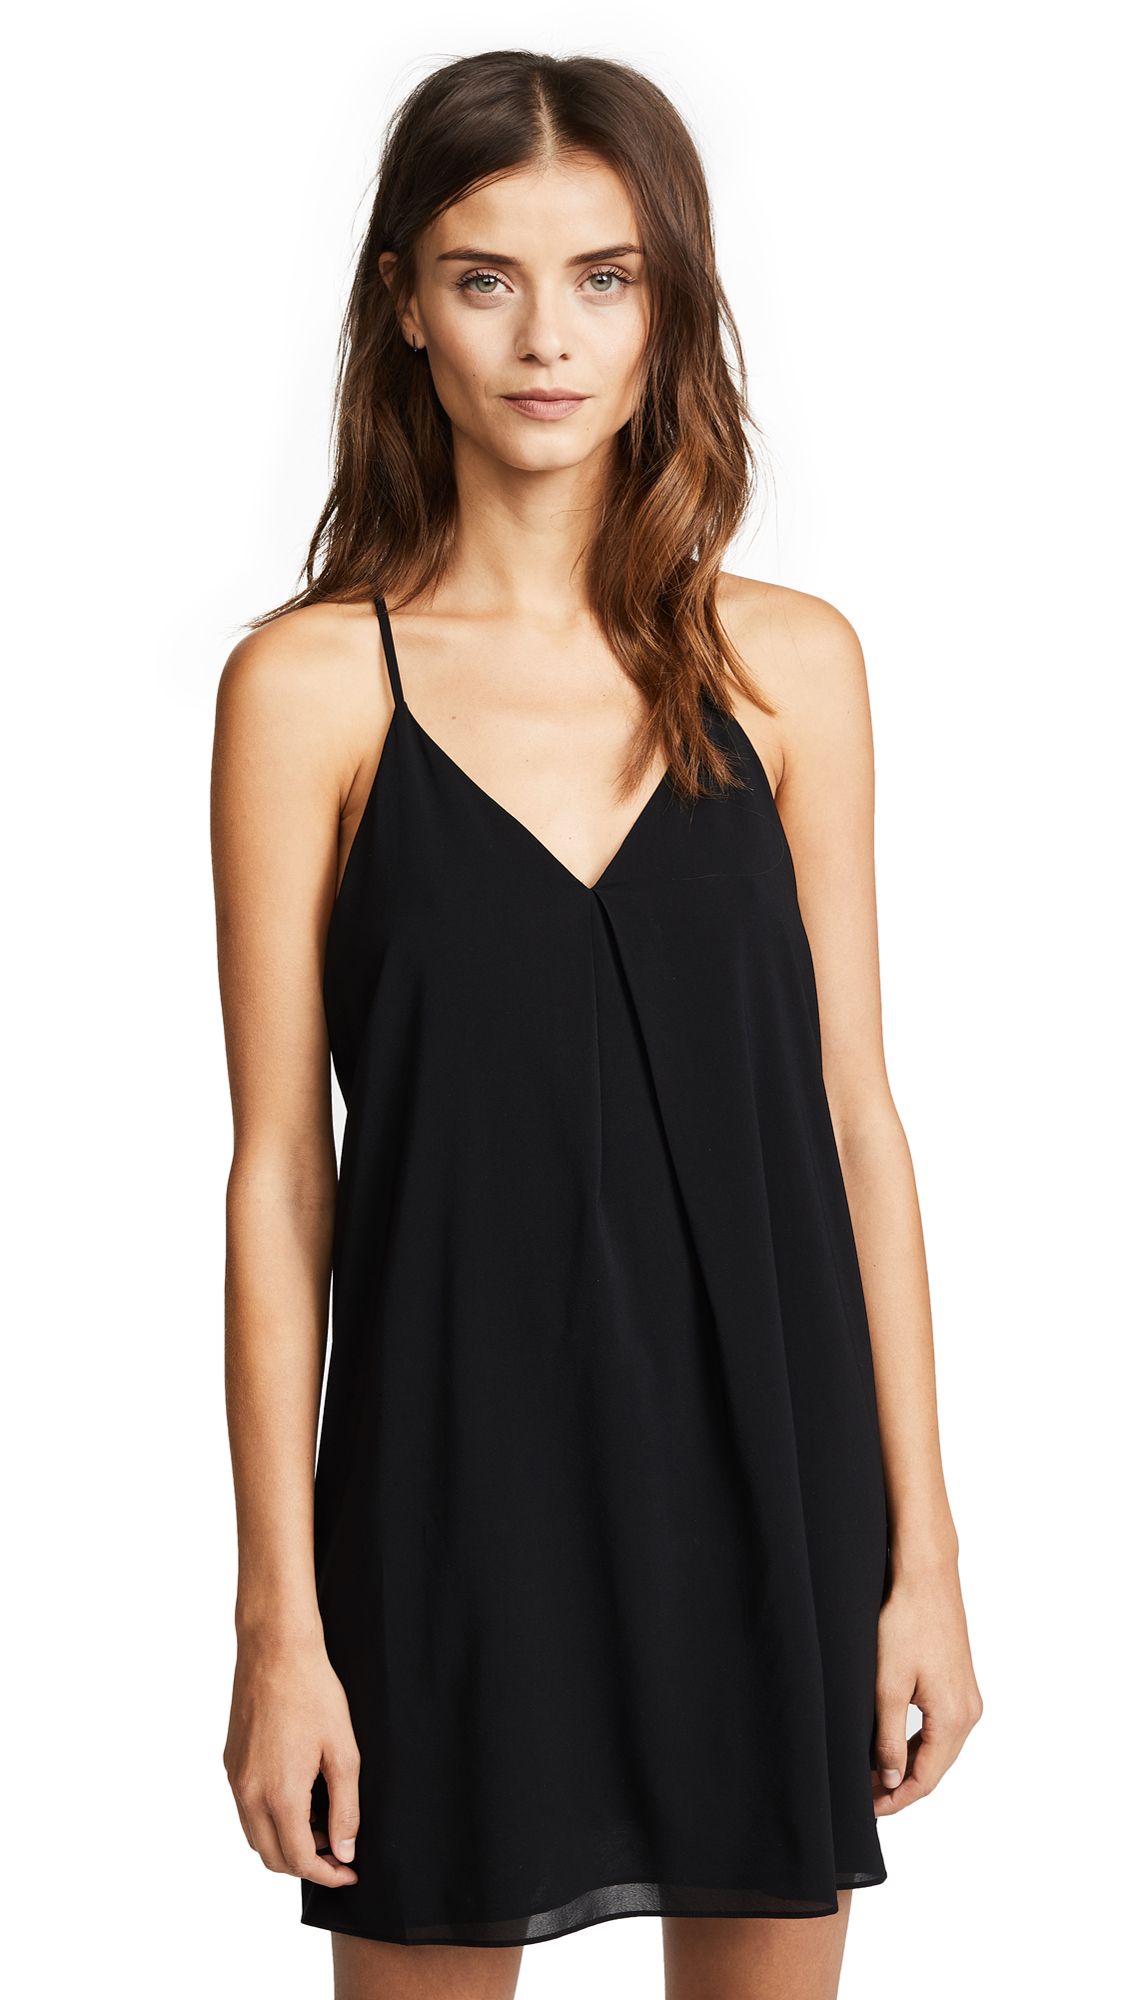 alice + olivia Fierra Dress - Black